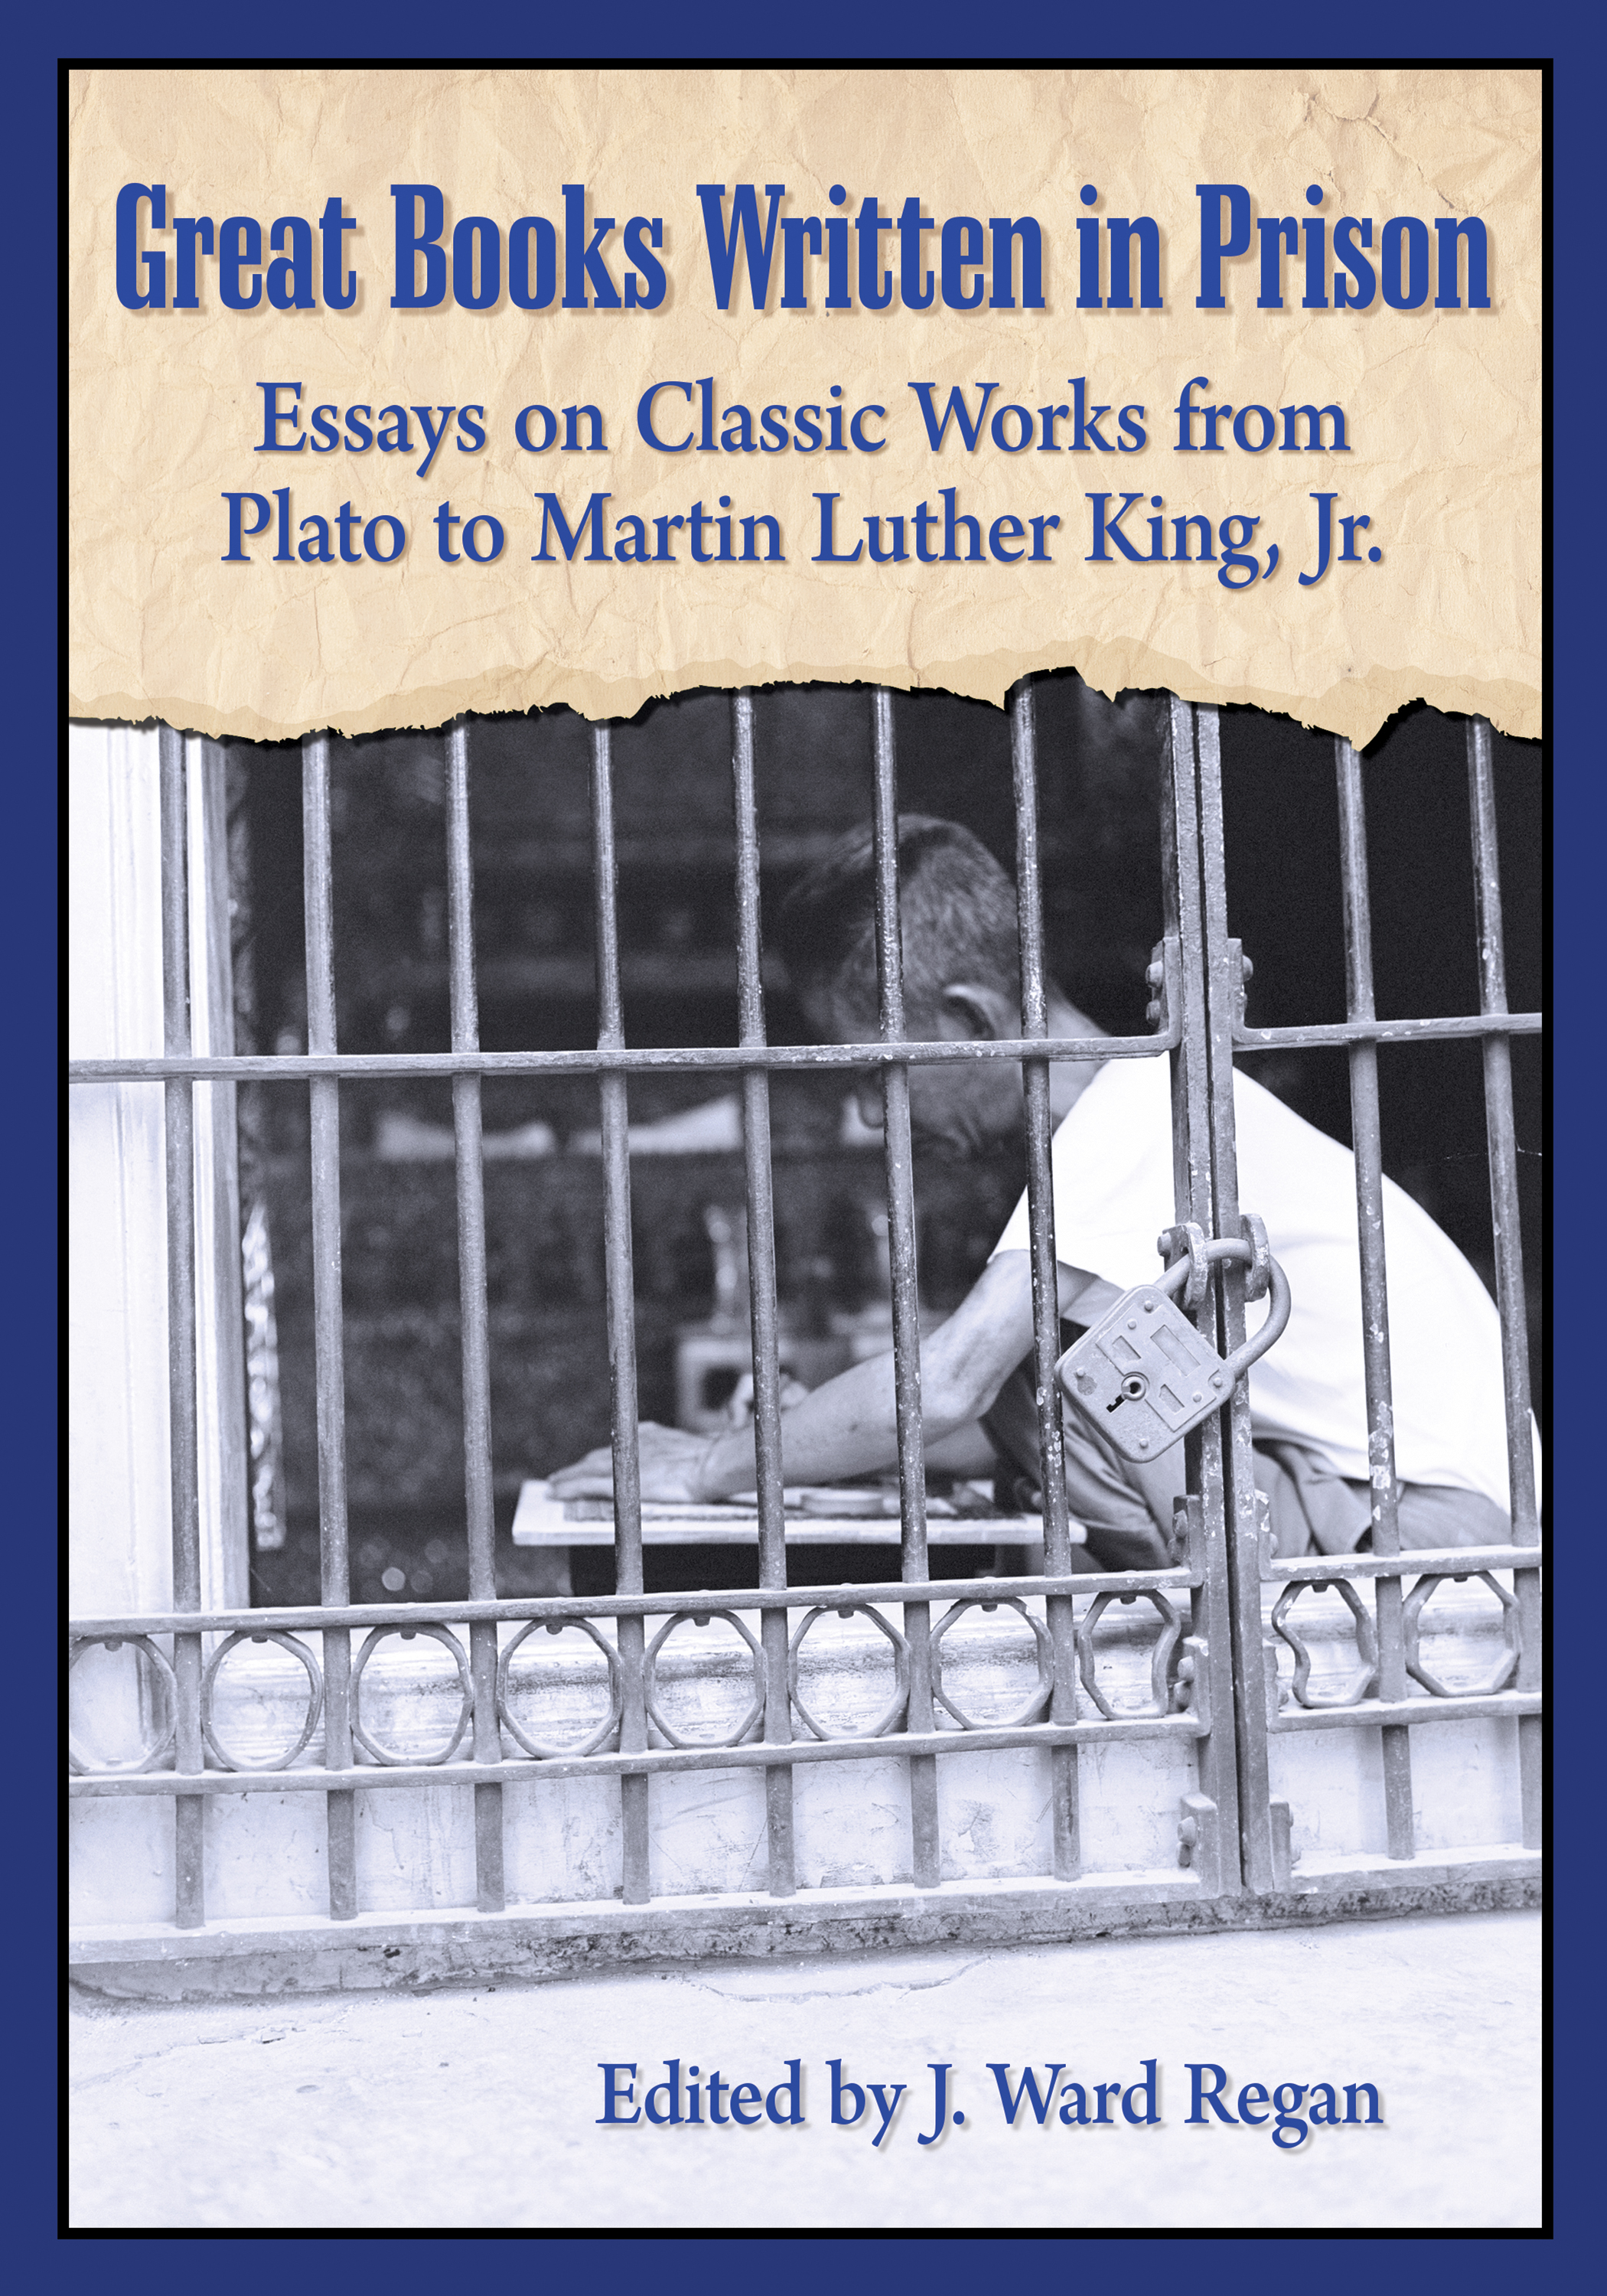 mlk essays essay essay on martin luther king jr essays by martin  great books written in prison edited by j ward regan diversity news martin luther king